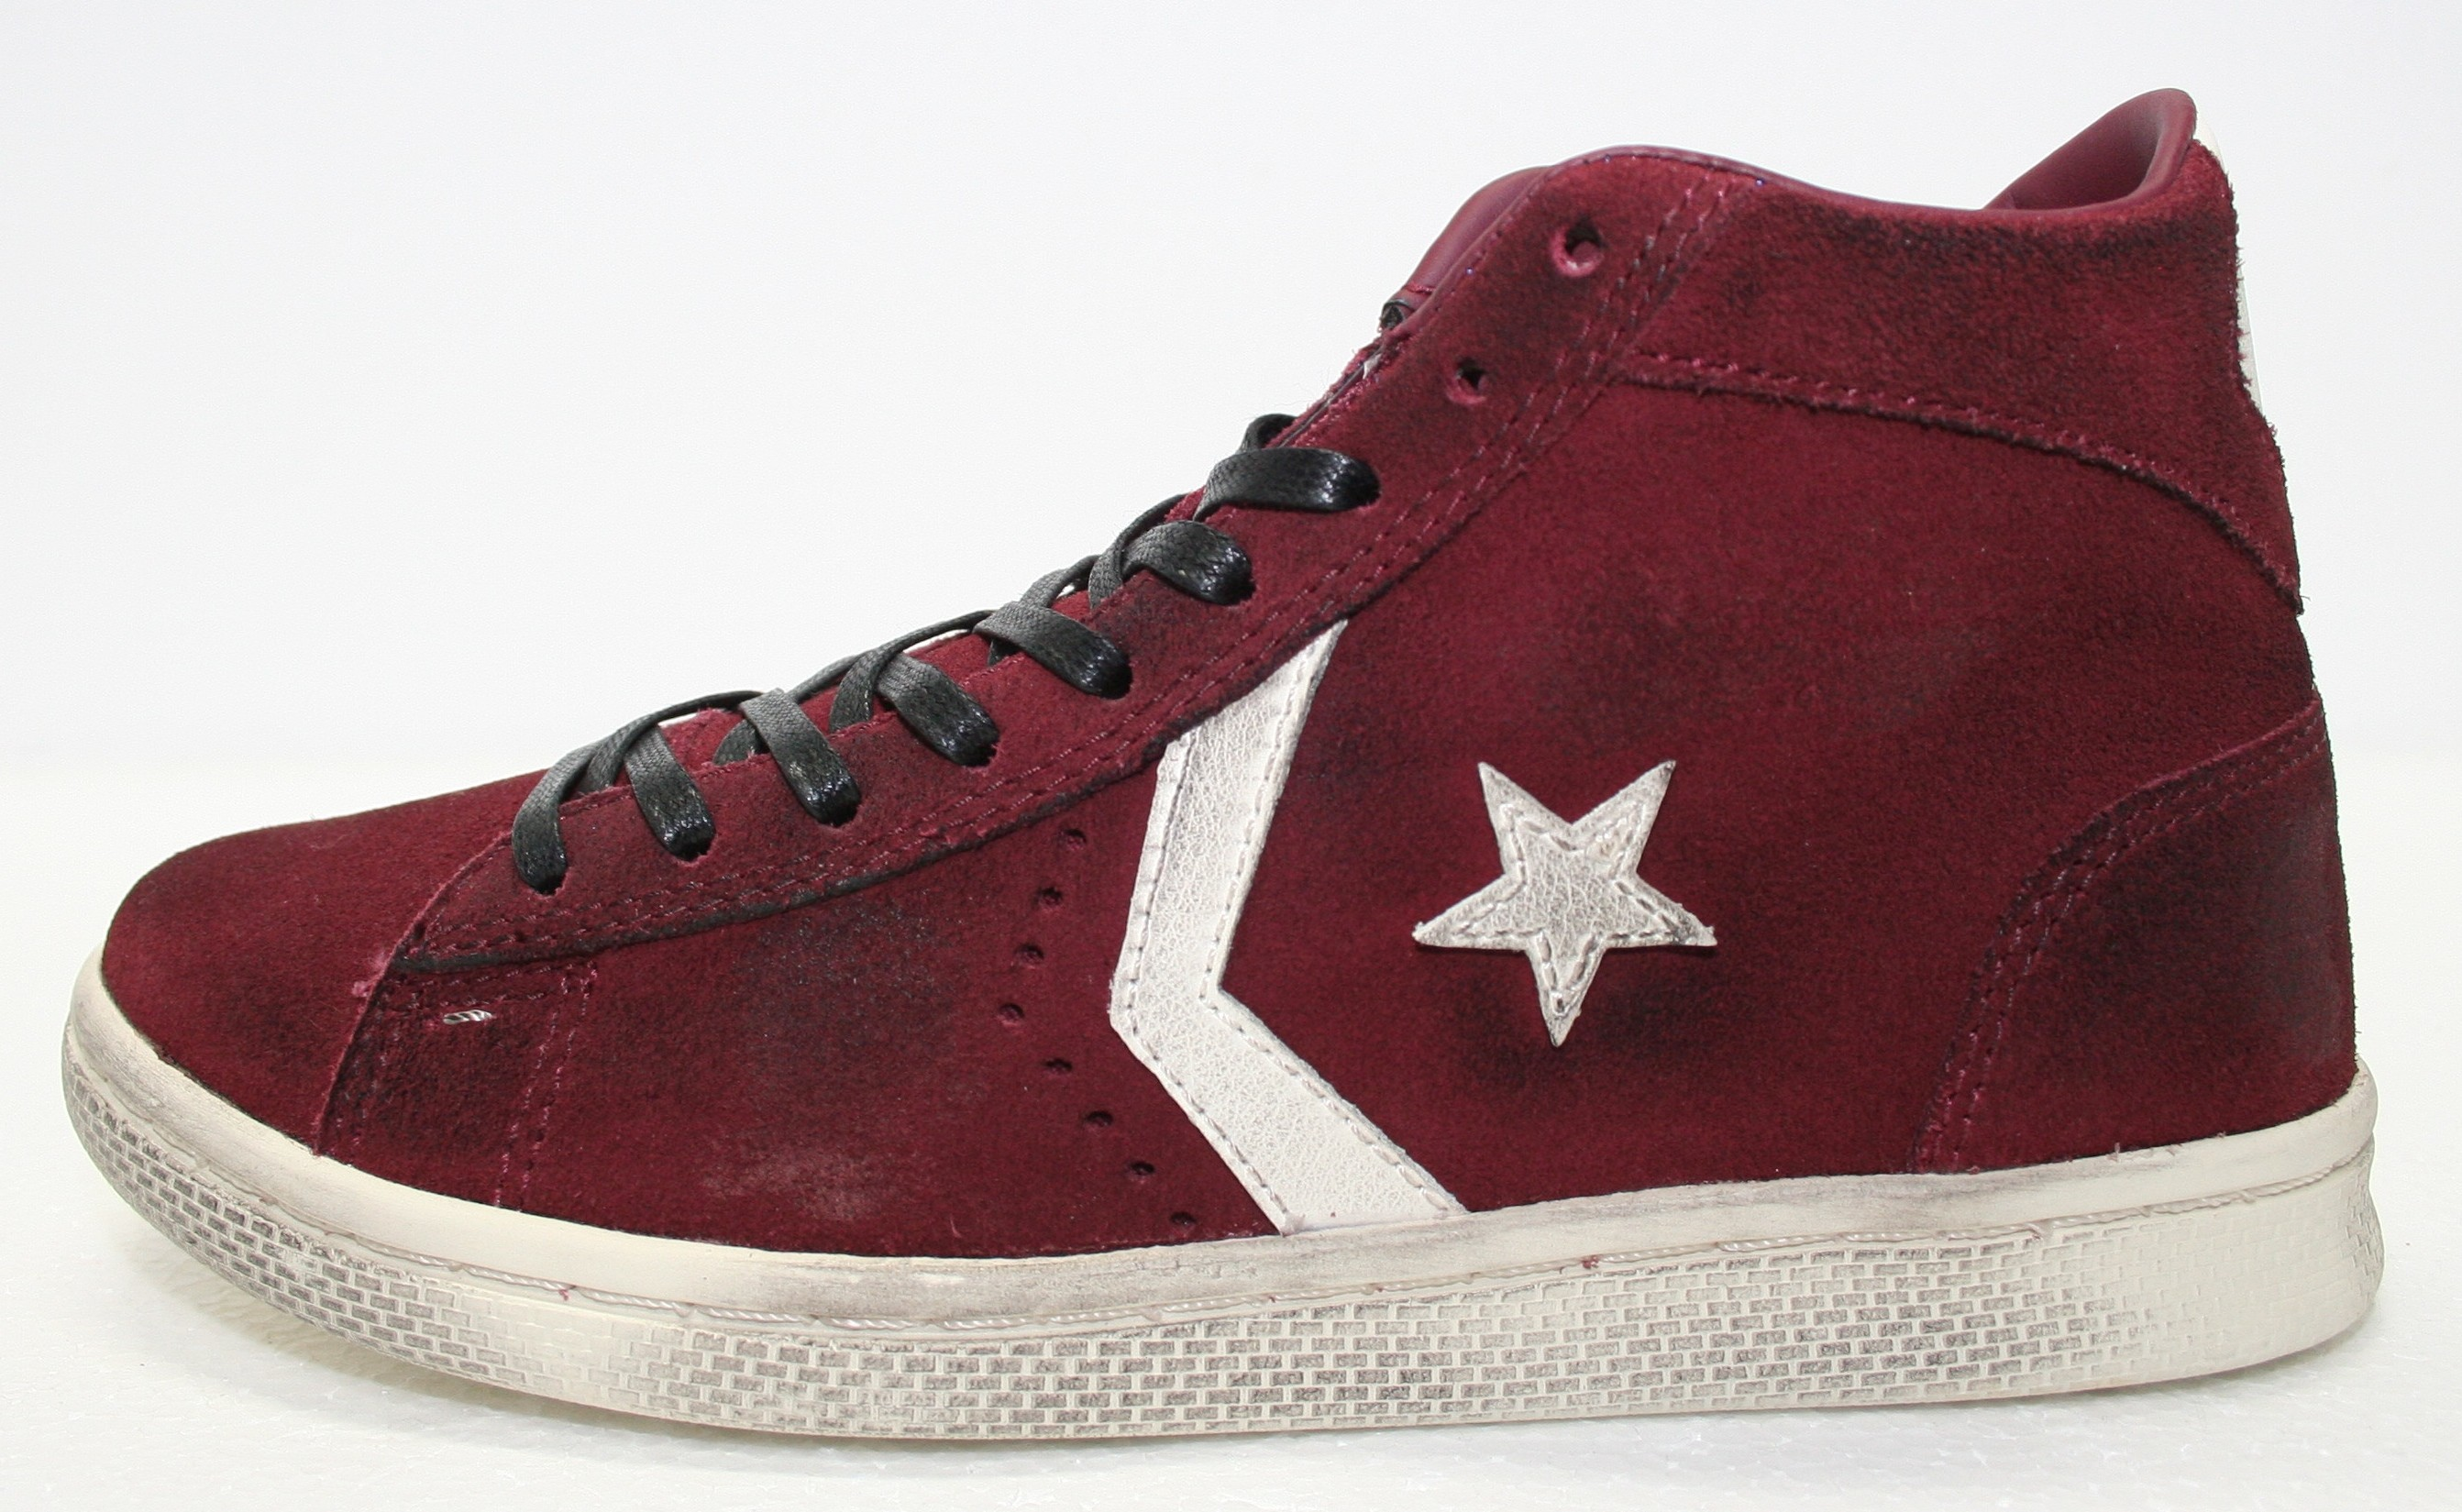 converse pro leather mid limited edition